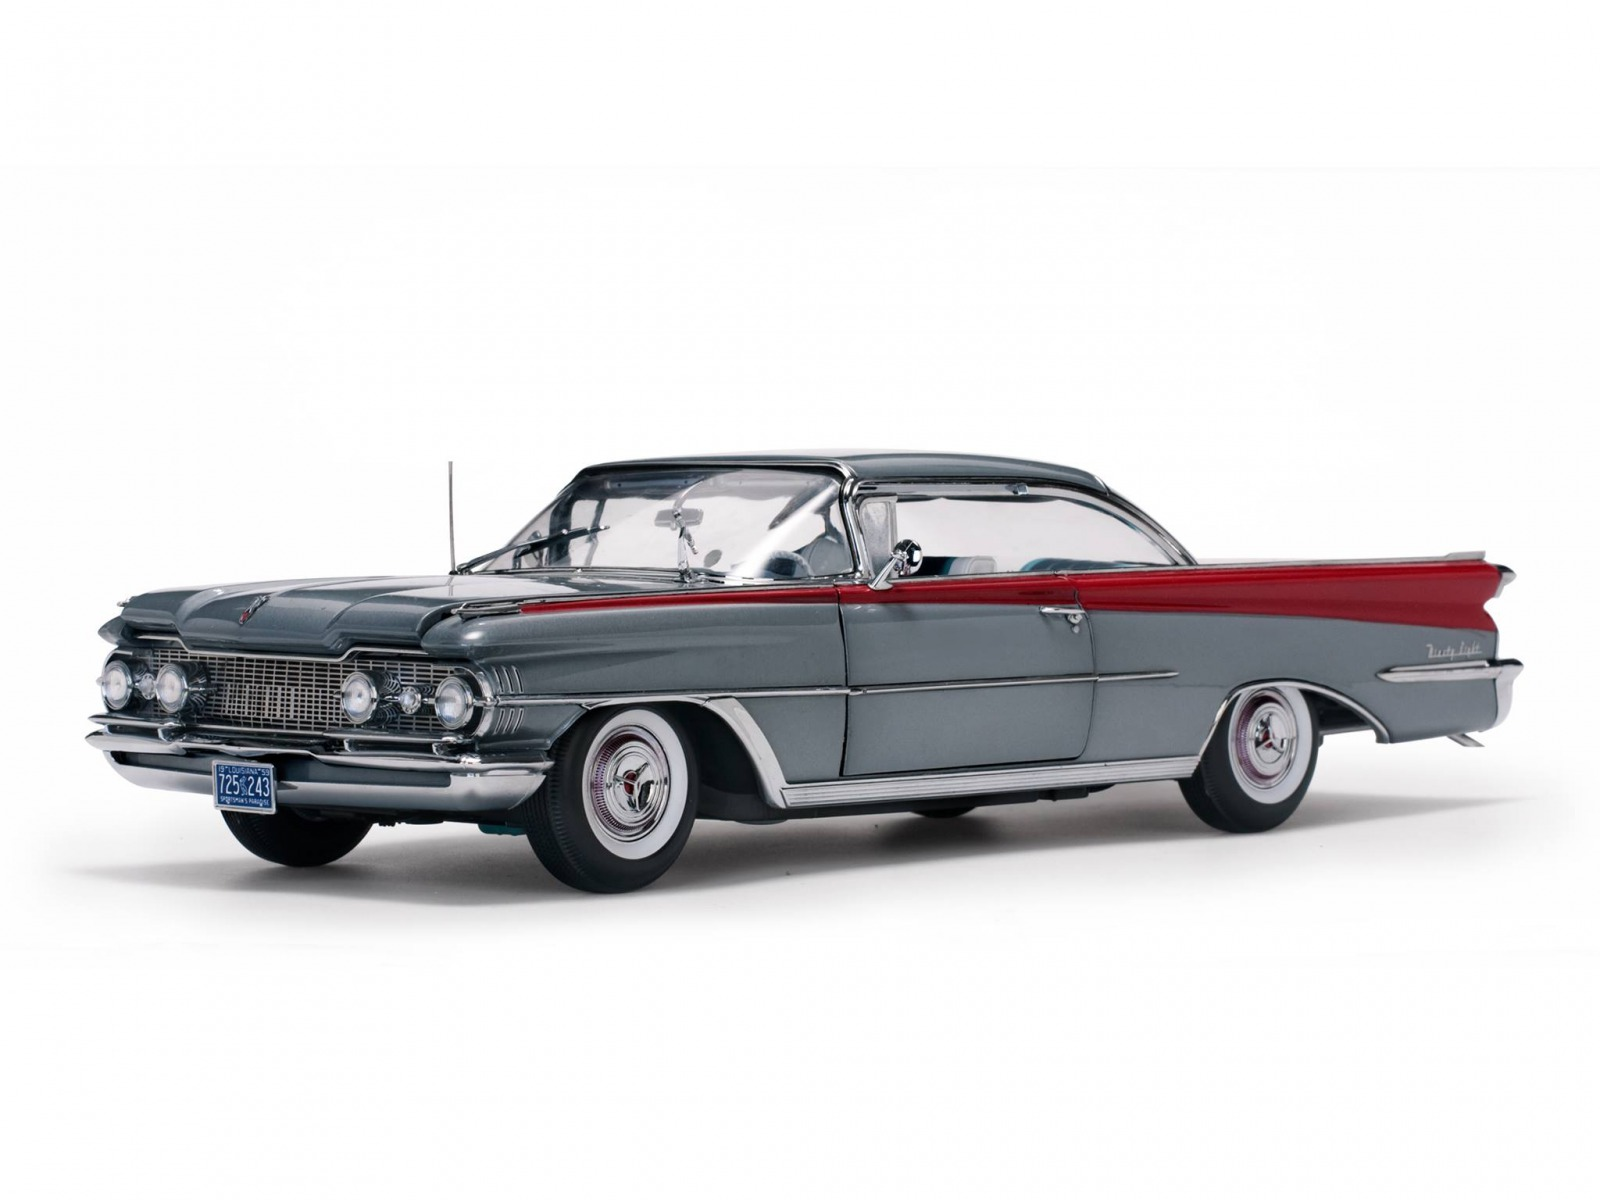 Sun Star サンスター 1959年モデル オールズモビル 98 ハードトップ1959 Oldsmobile 98 hardtop 1/18 by Sun Star Platinum Collection NEW